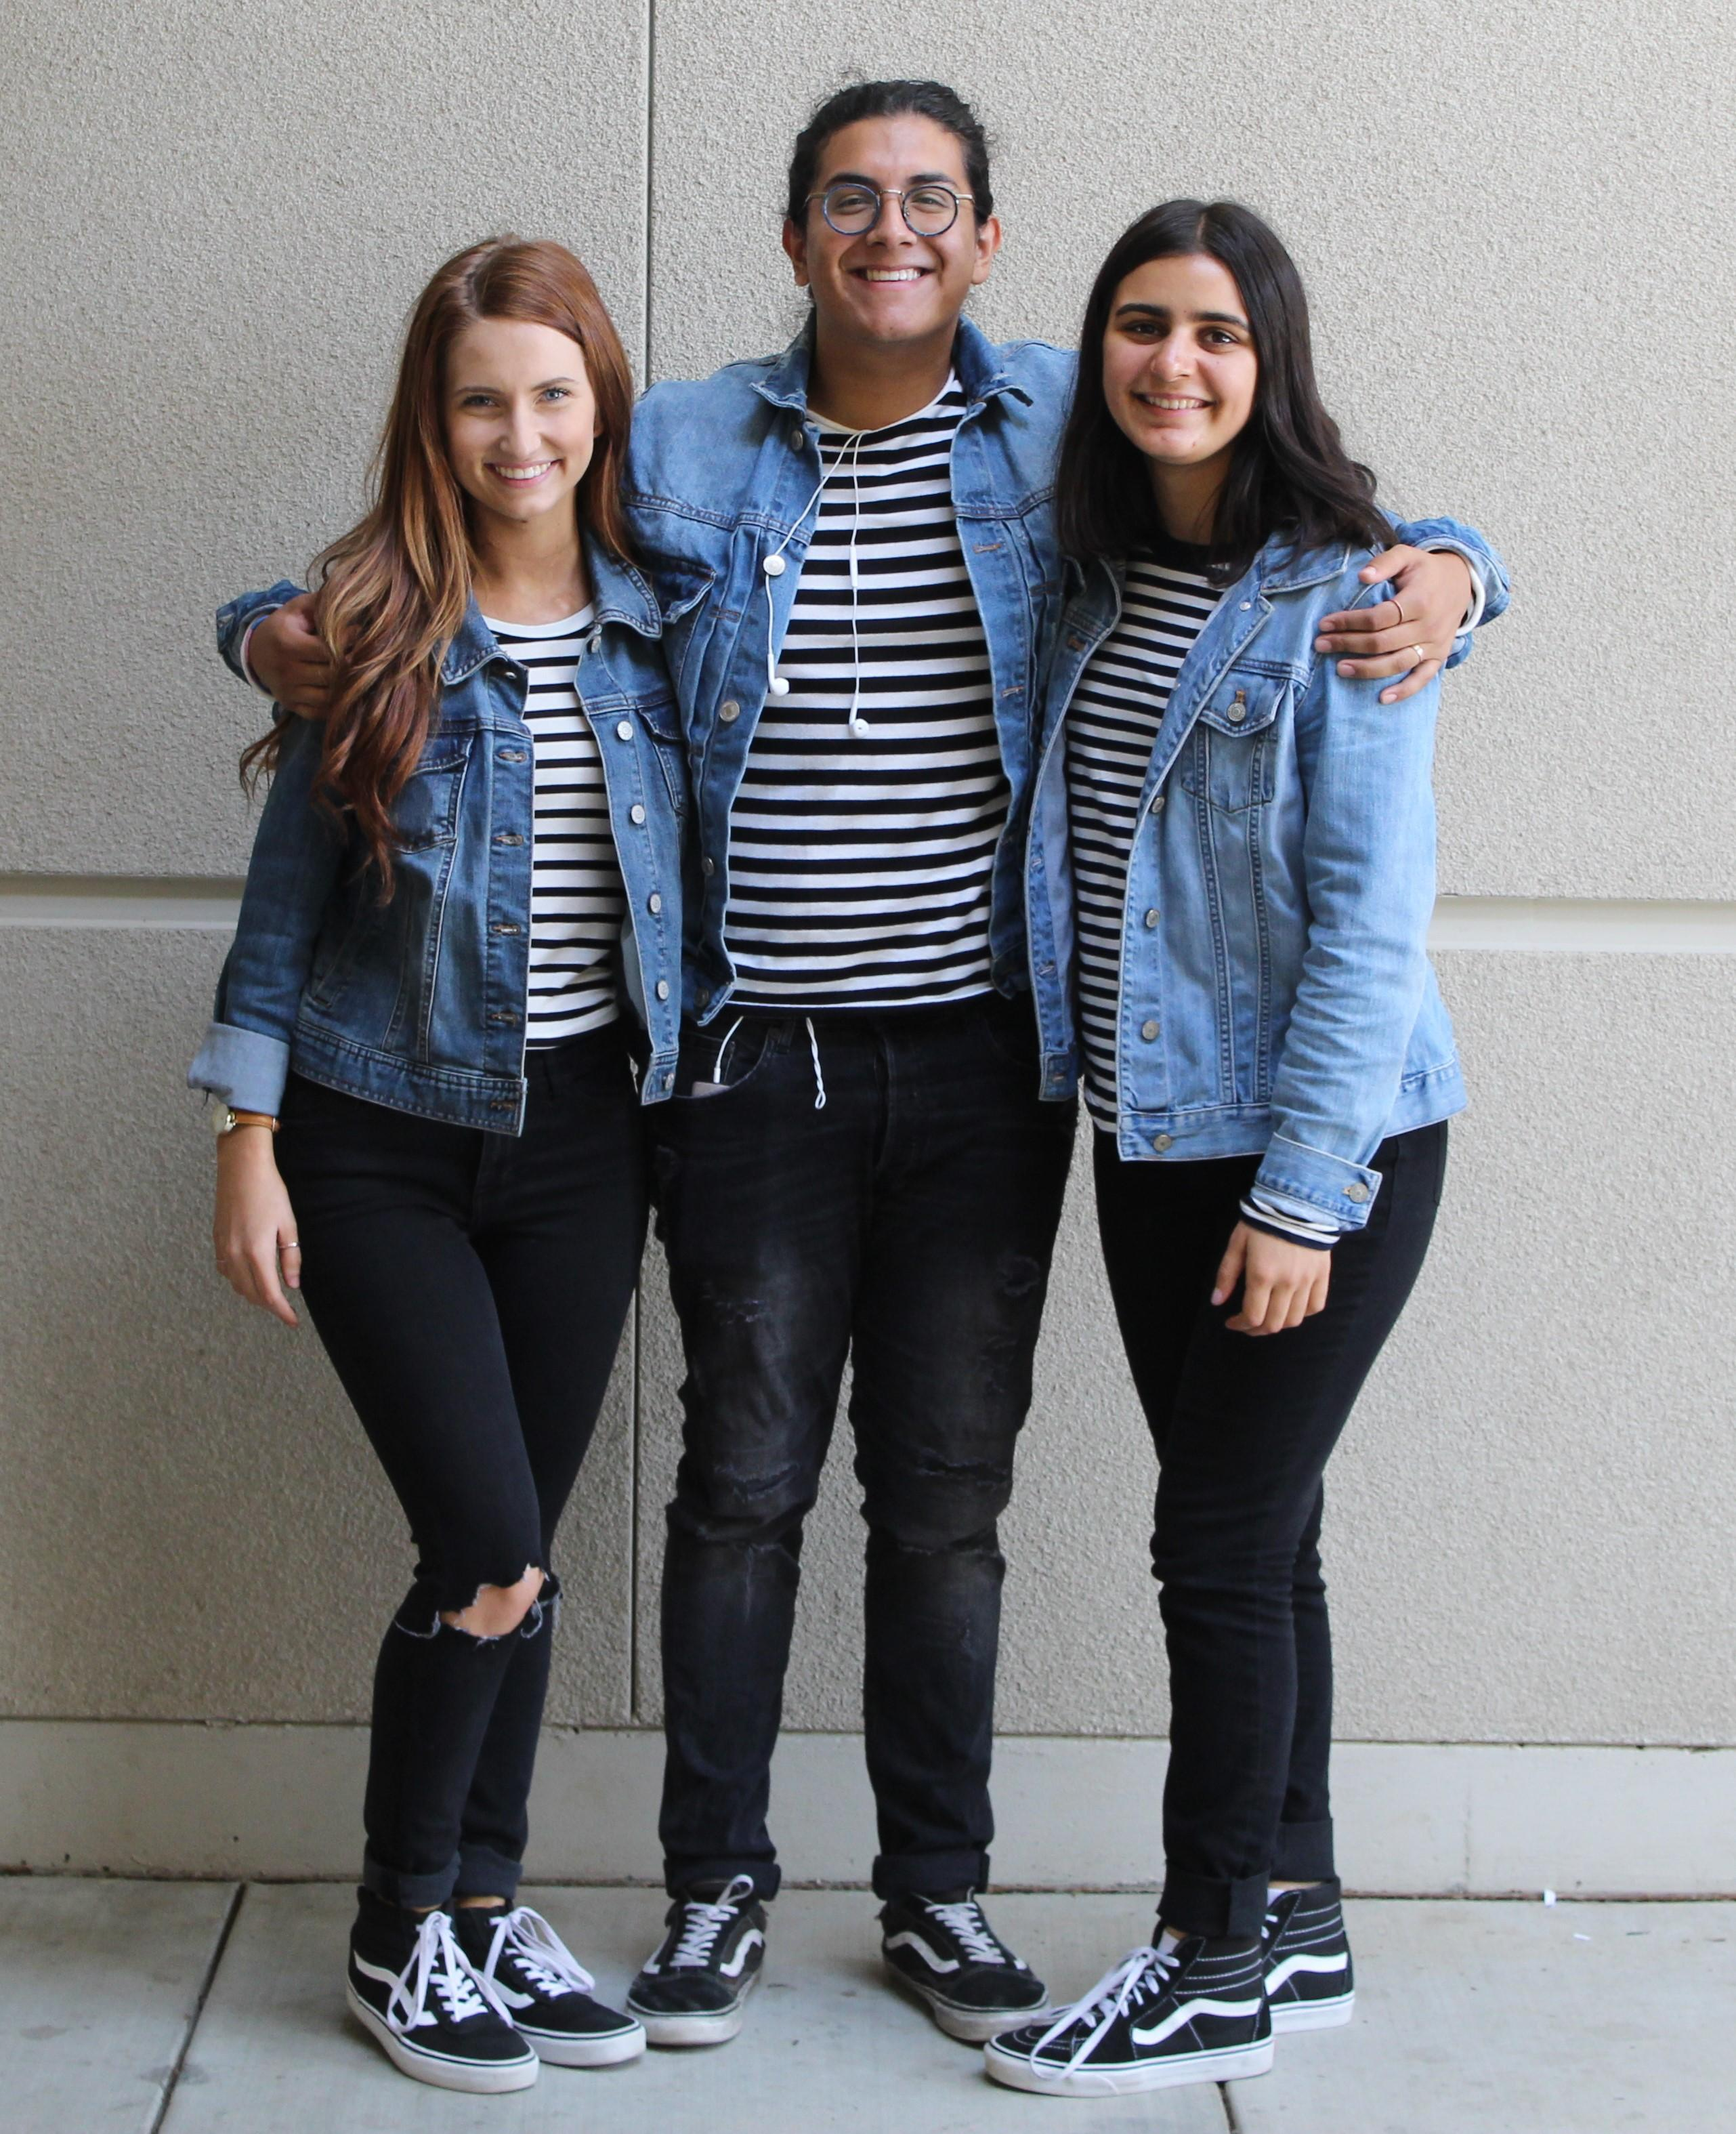 Students wearing matching outfits for Meet My Roommate Monday